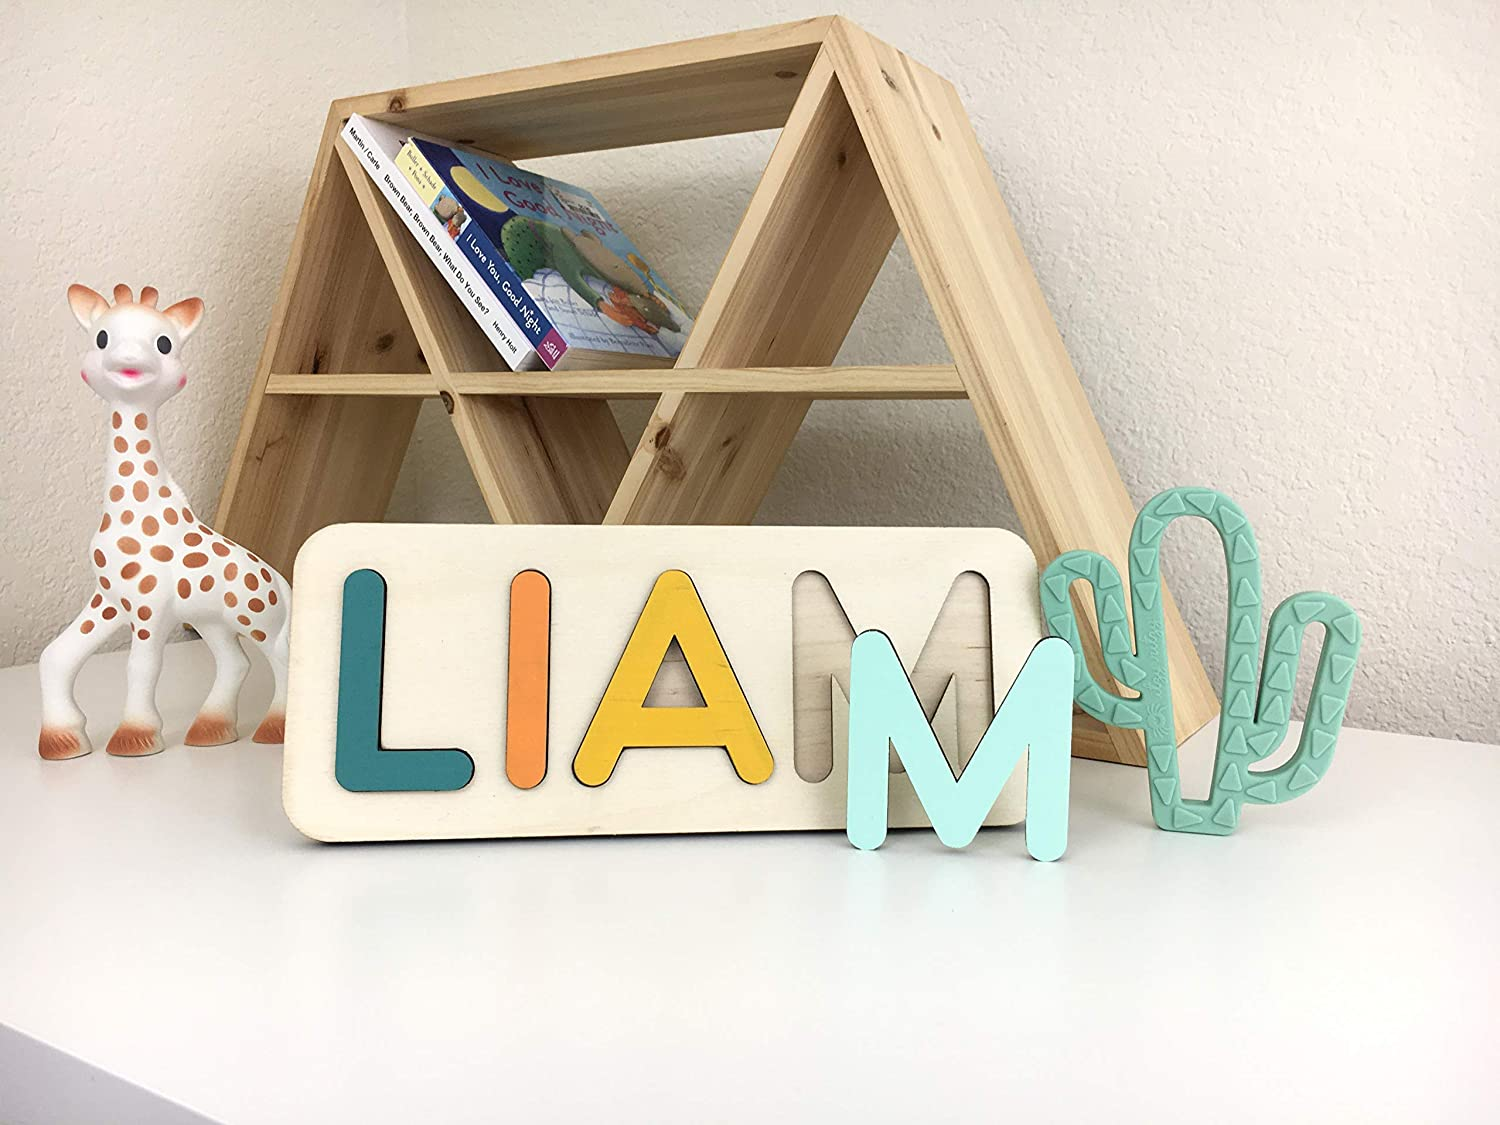 Personalized Name Puzzle 1 year old girl gift Wooden Toy Games Son Pattern dots New Baby Gift Boy lines stars Birthday Montessori toys